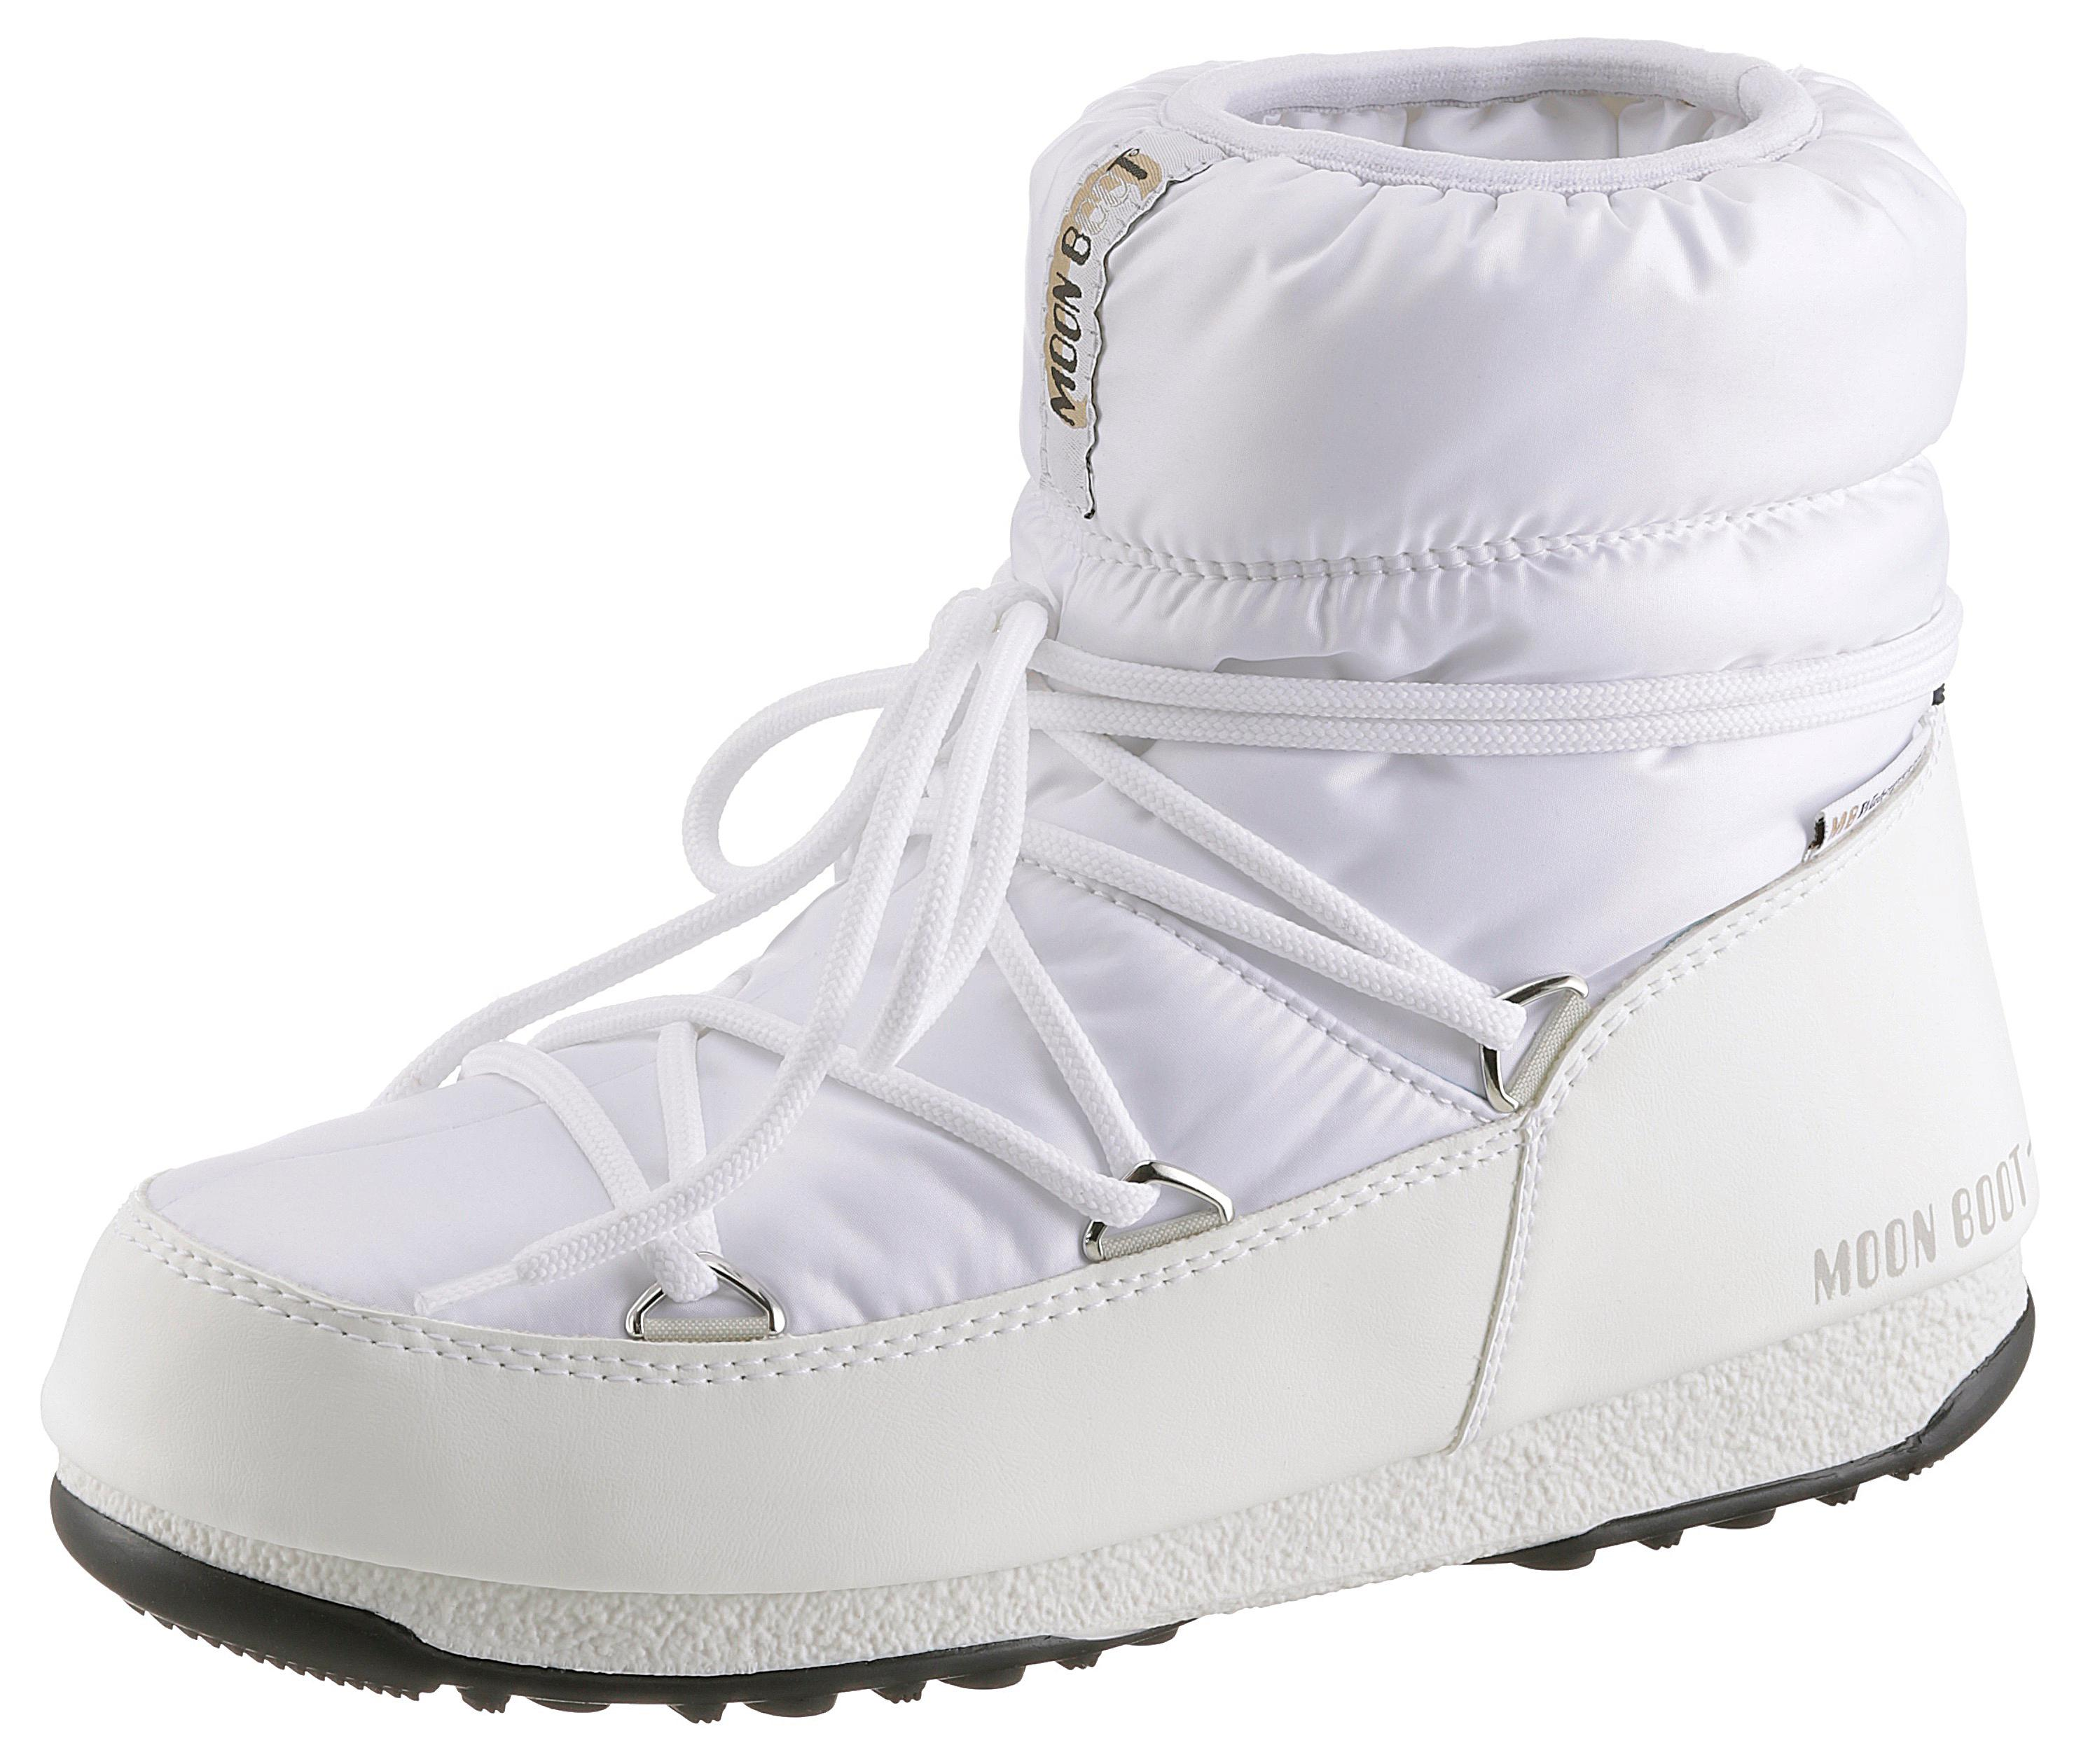 Moonboot Winterboots Low Nylon WP 2 | Schuhe > Boots | Moonboot